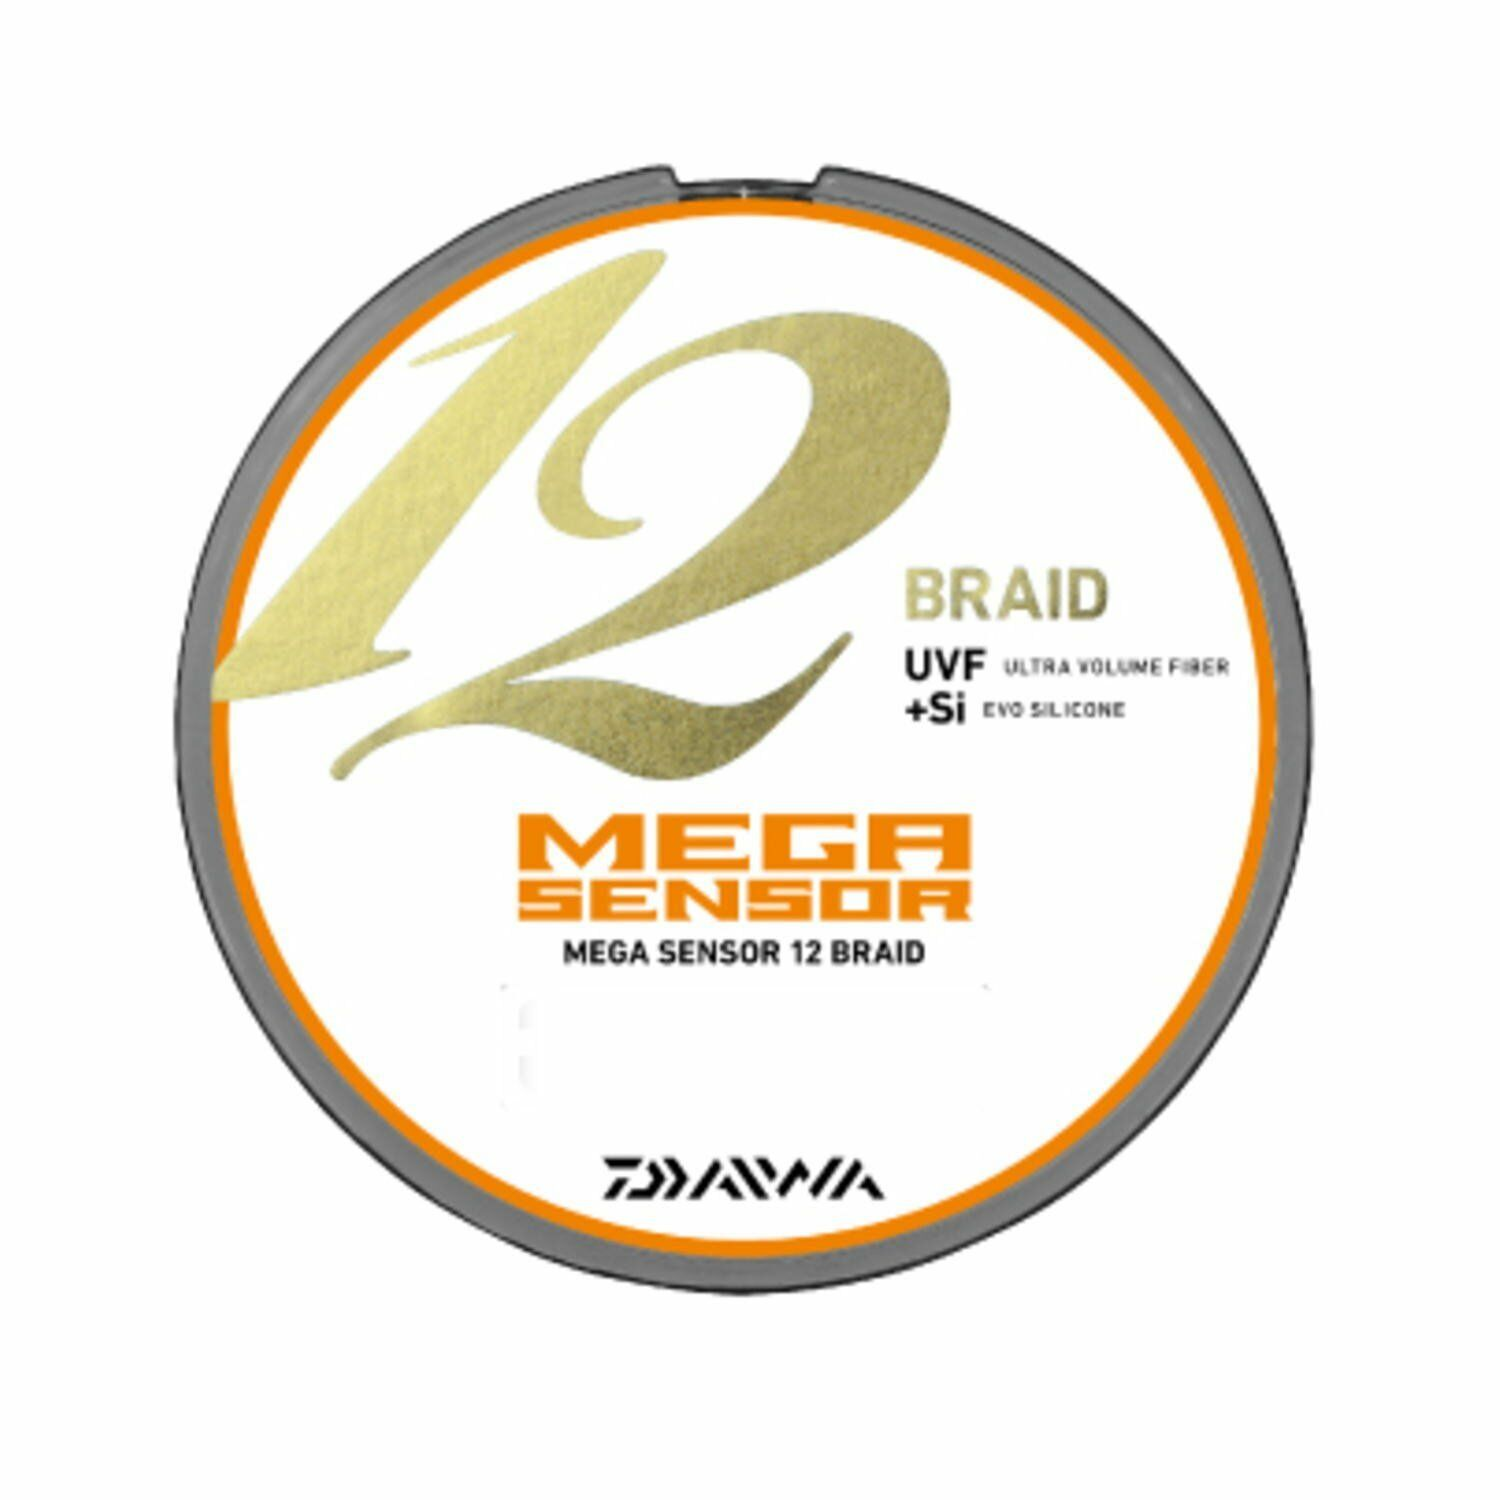 Daiwa PE Line UVF MEGA  SENSOR 12 BRAID EX + Si 200m Multi-color New from JAPAN  special offer